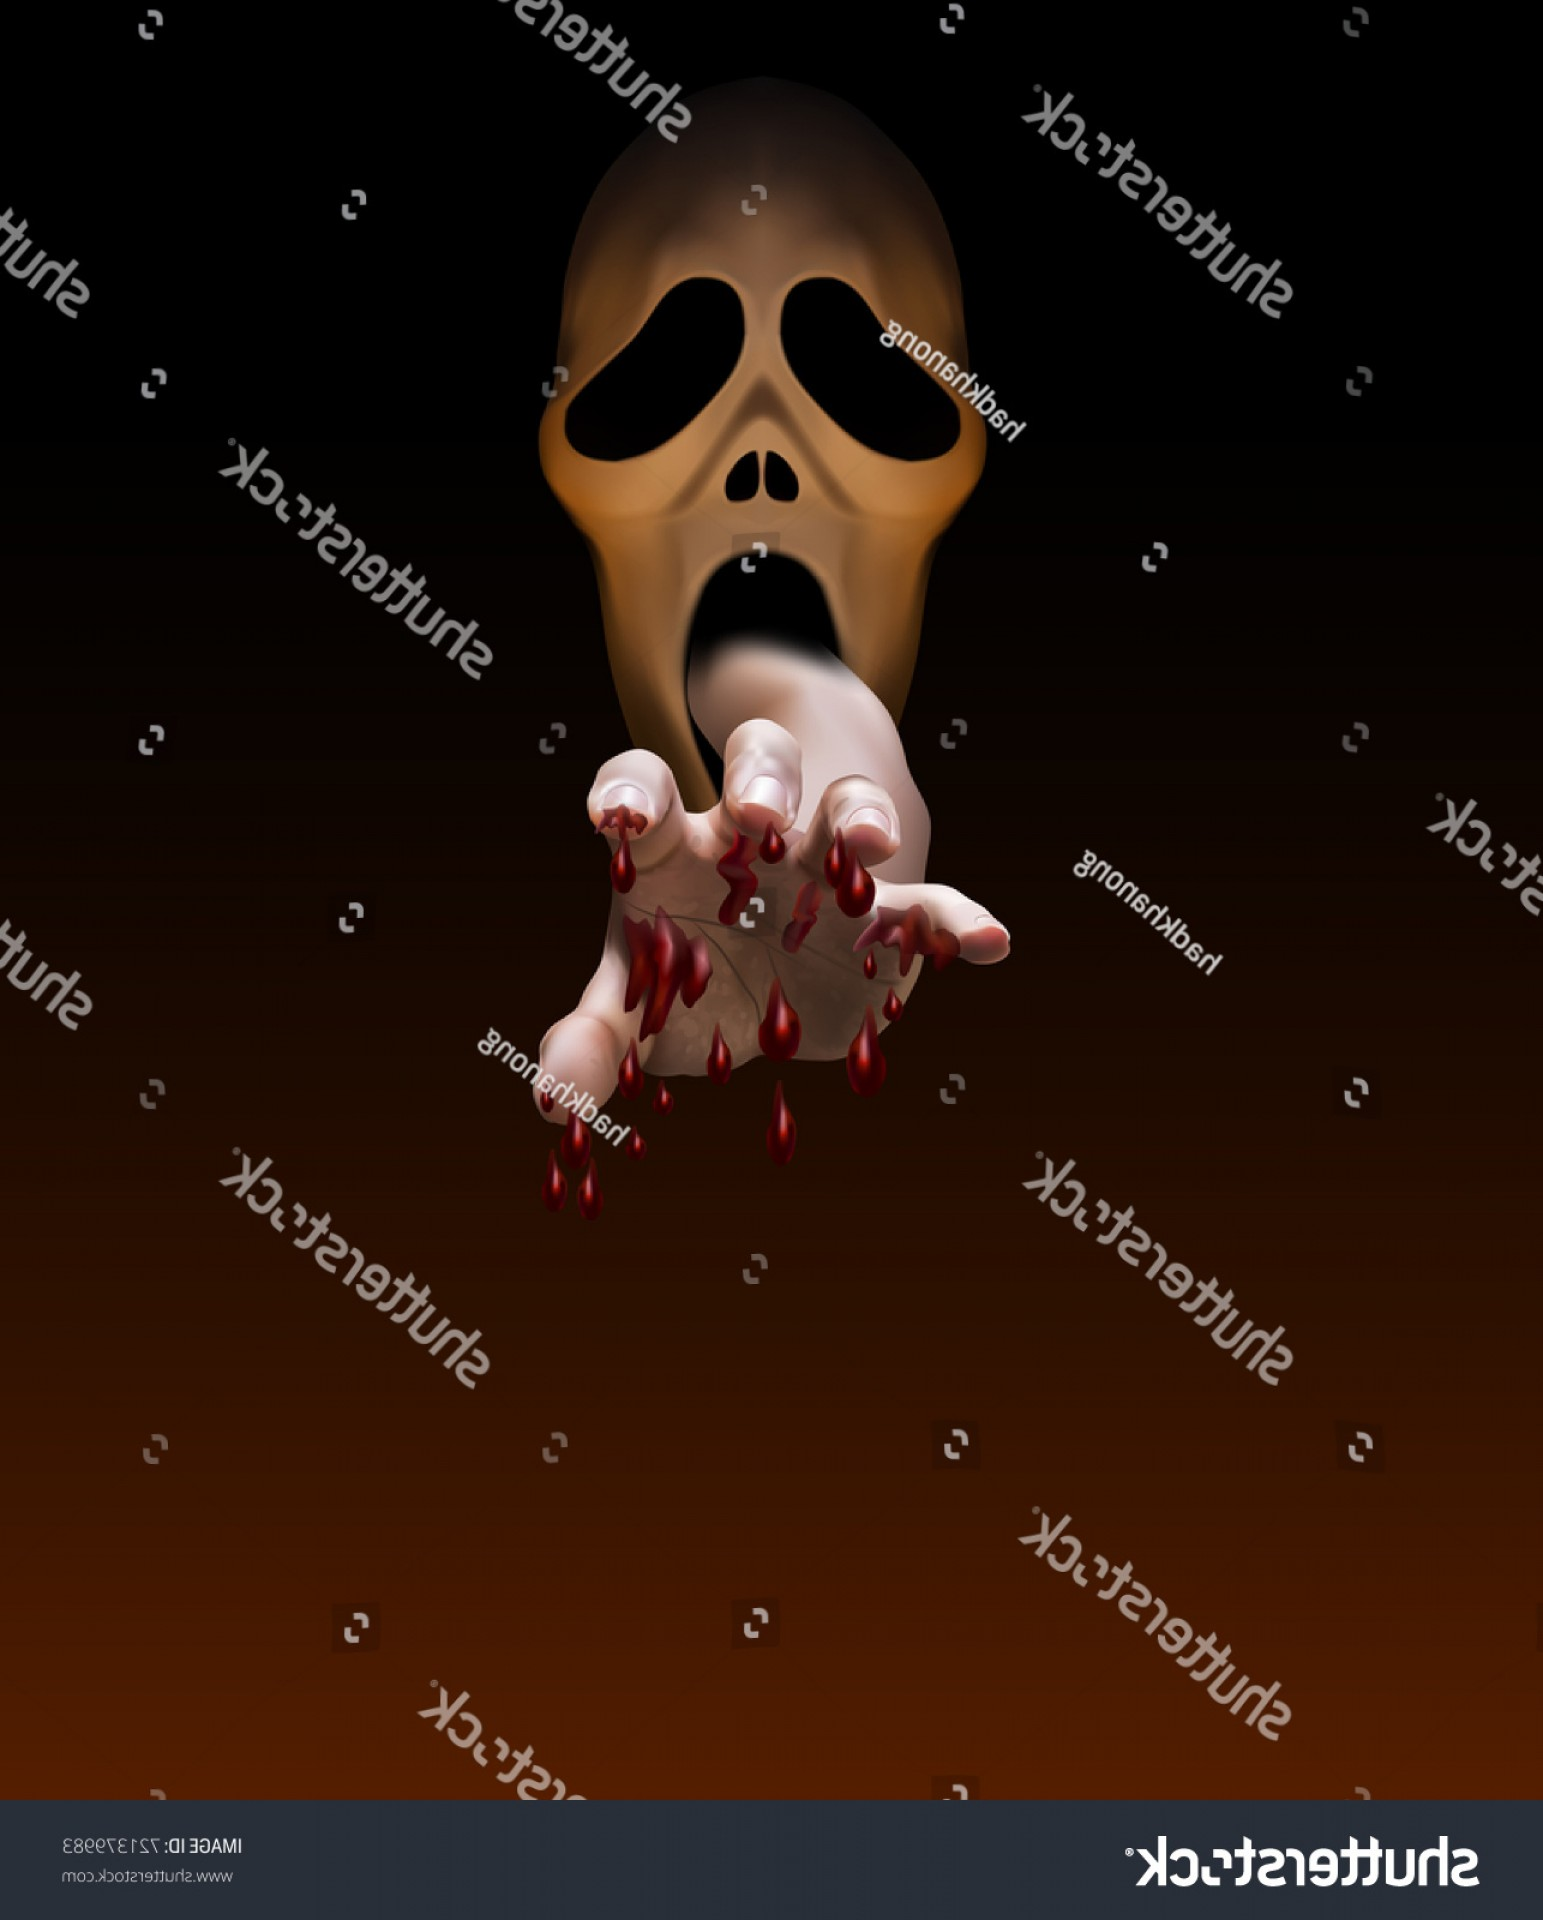 Headless Scary Halloween Skeletons Vectors: Male Handfull Blood Stretch Out Mouth